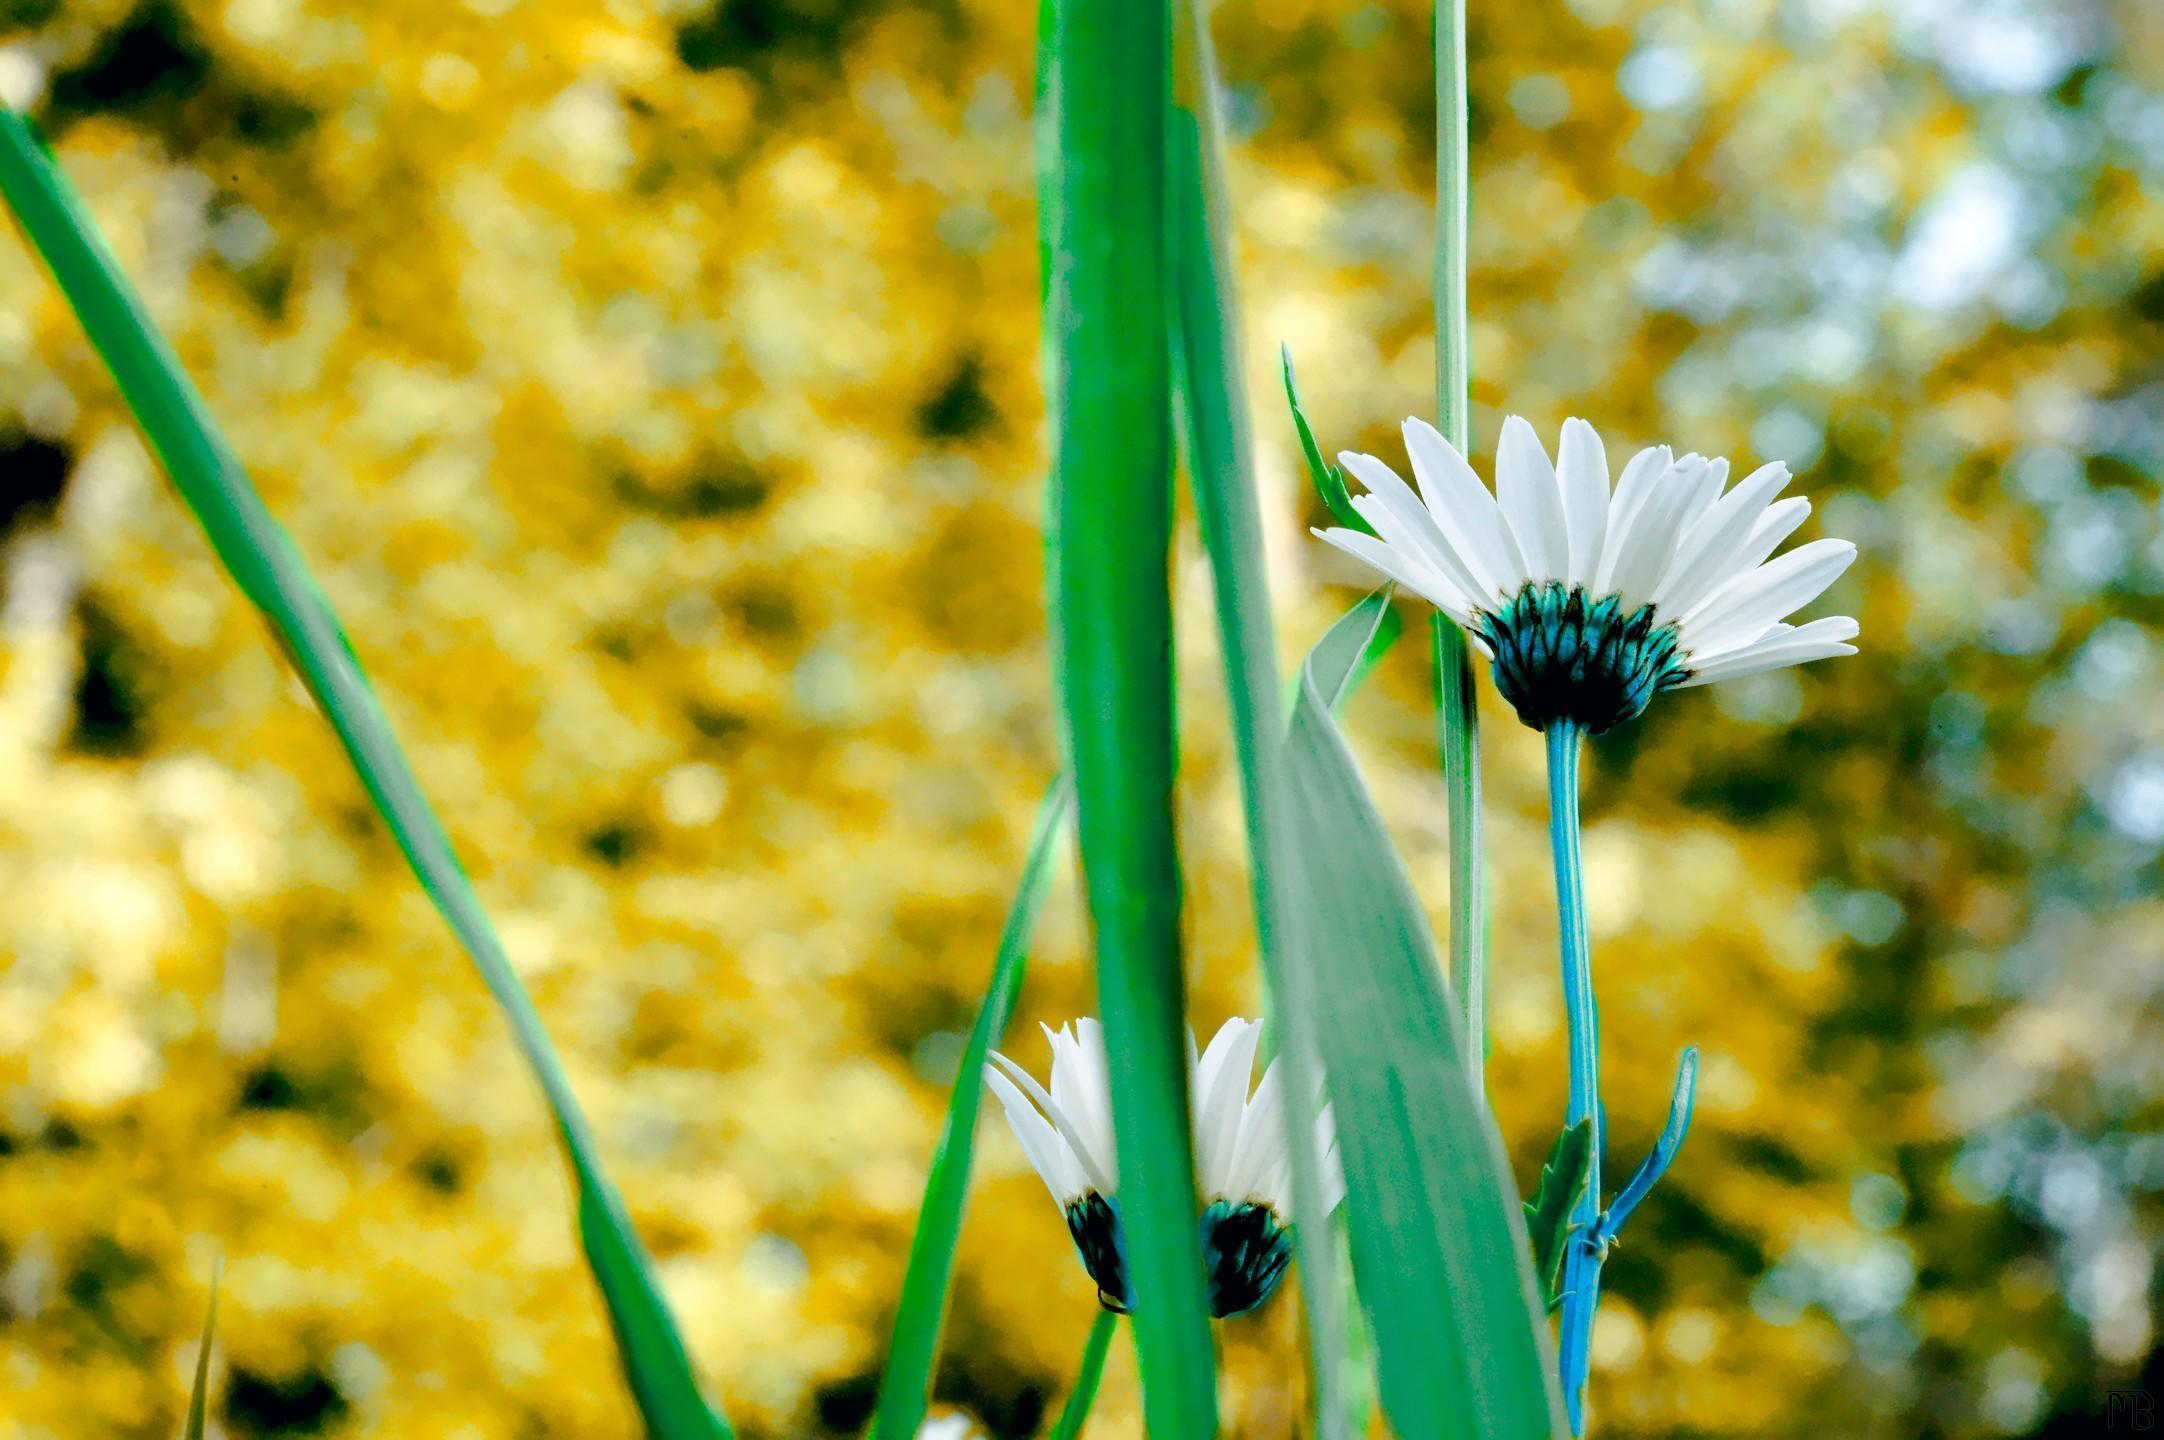 Arty blue daisys with green stems and yellow backgrounds